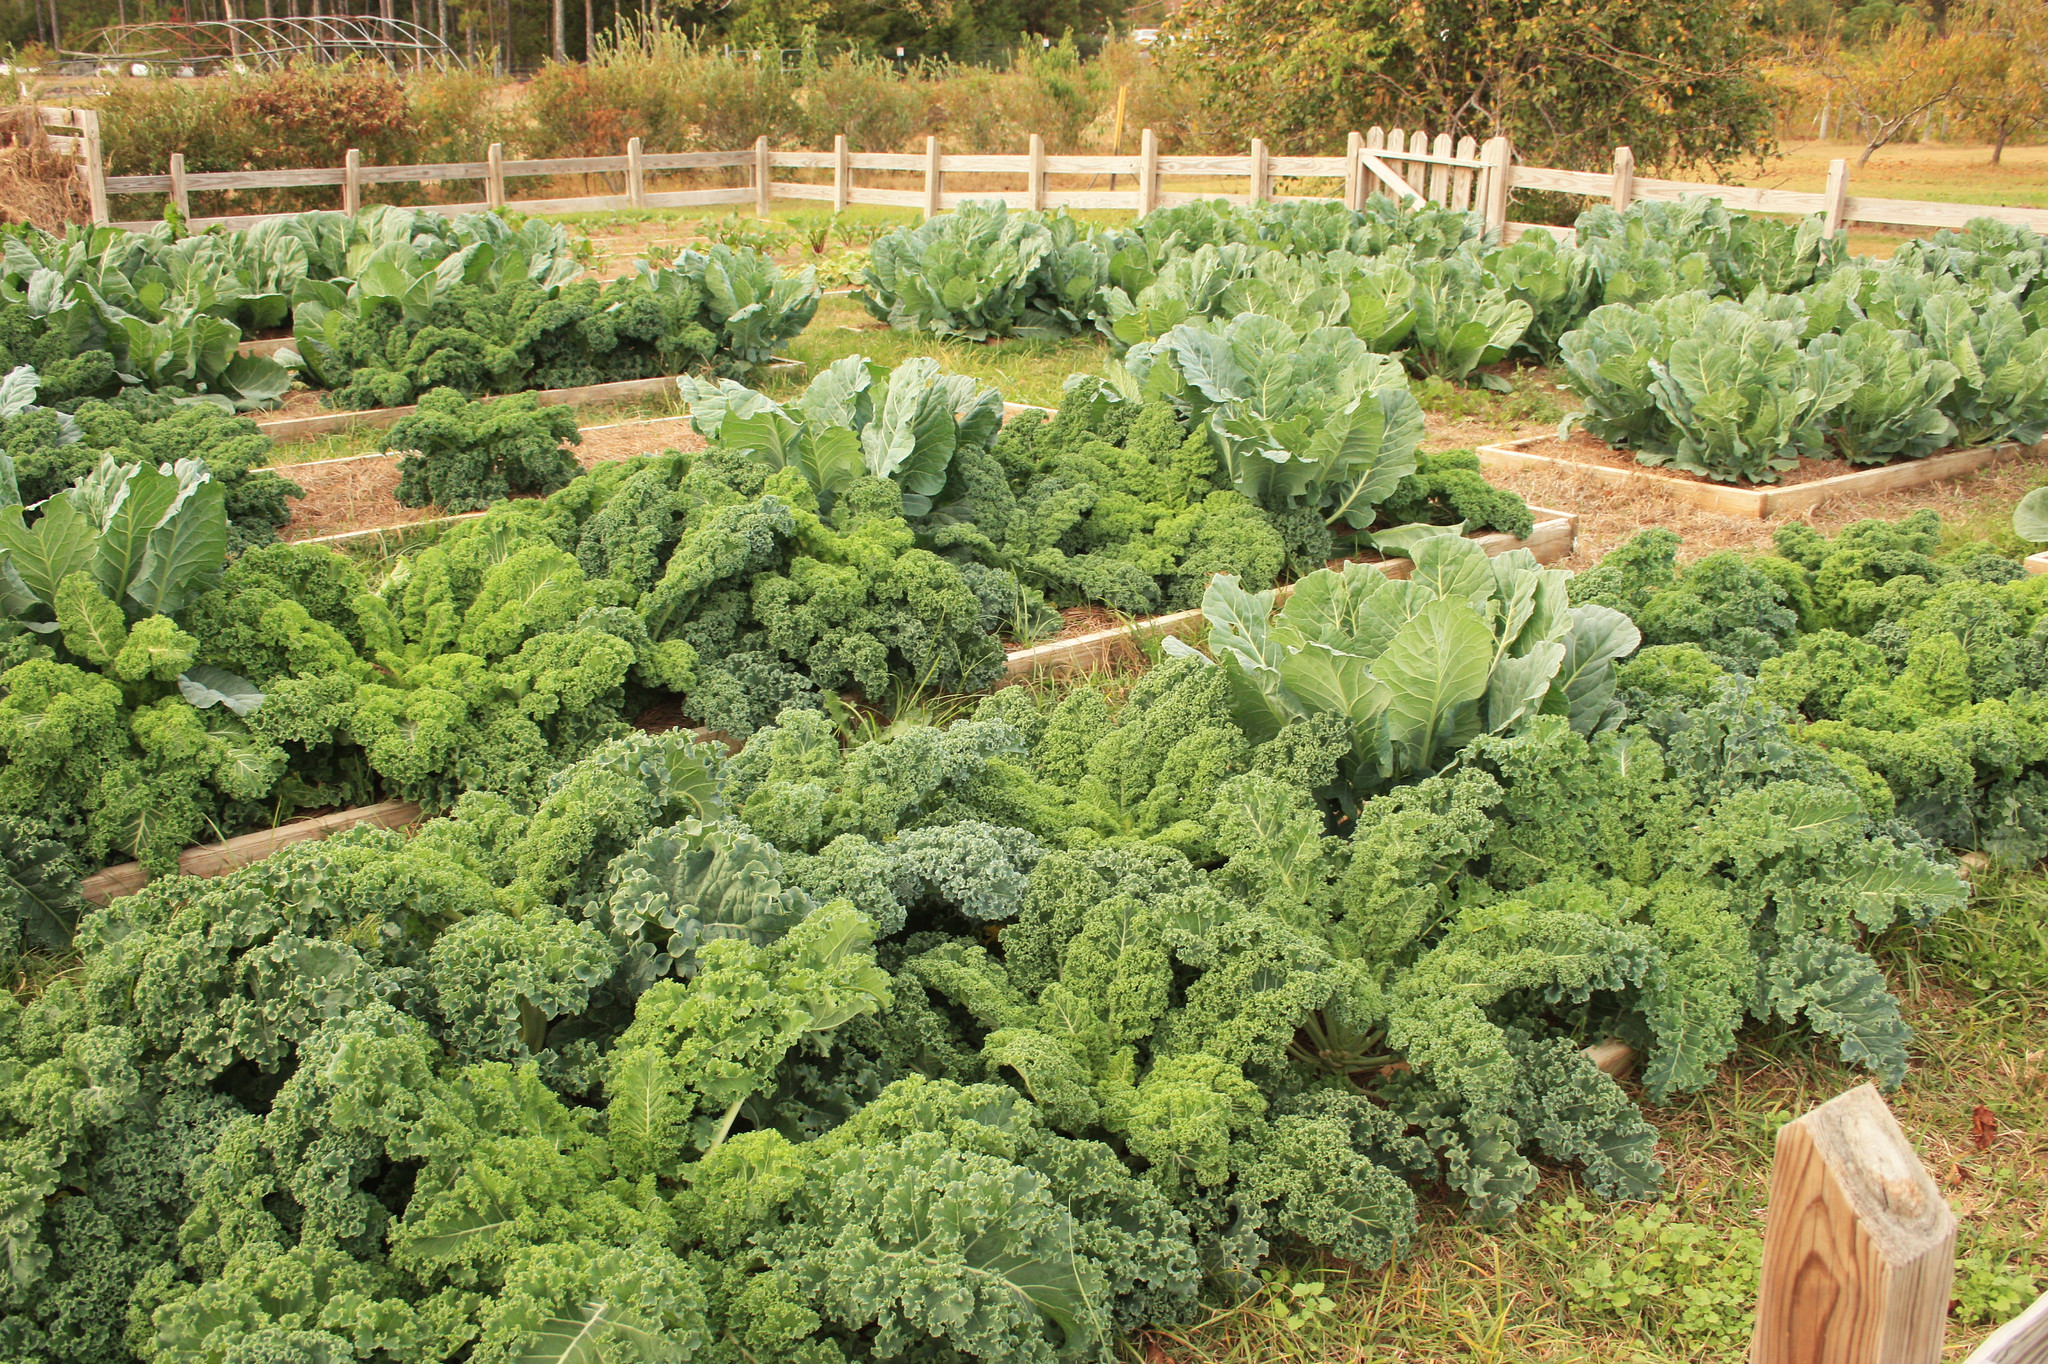 Kale and Cabbage in Raised Garden Beds